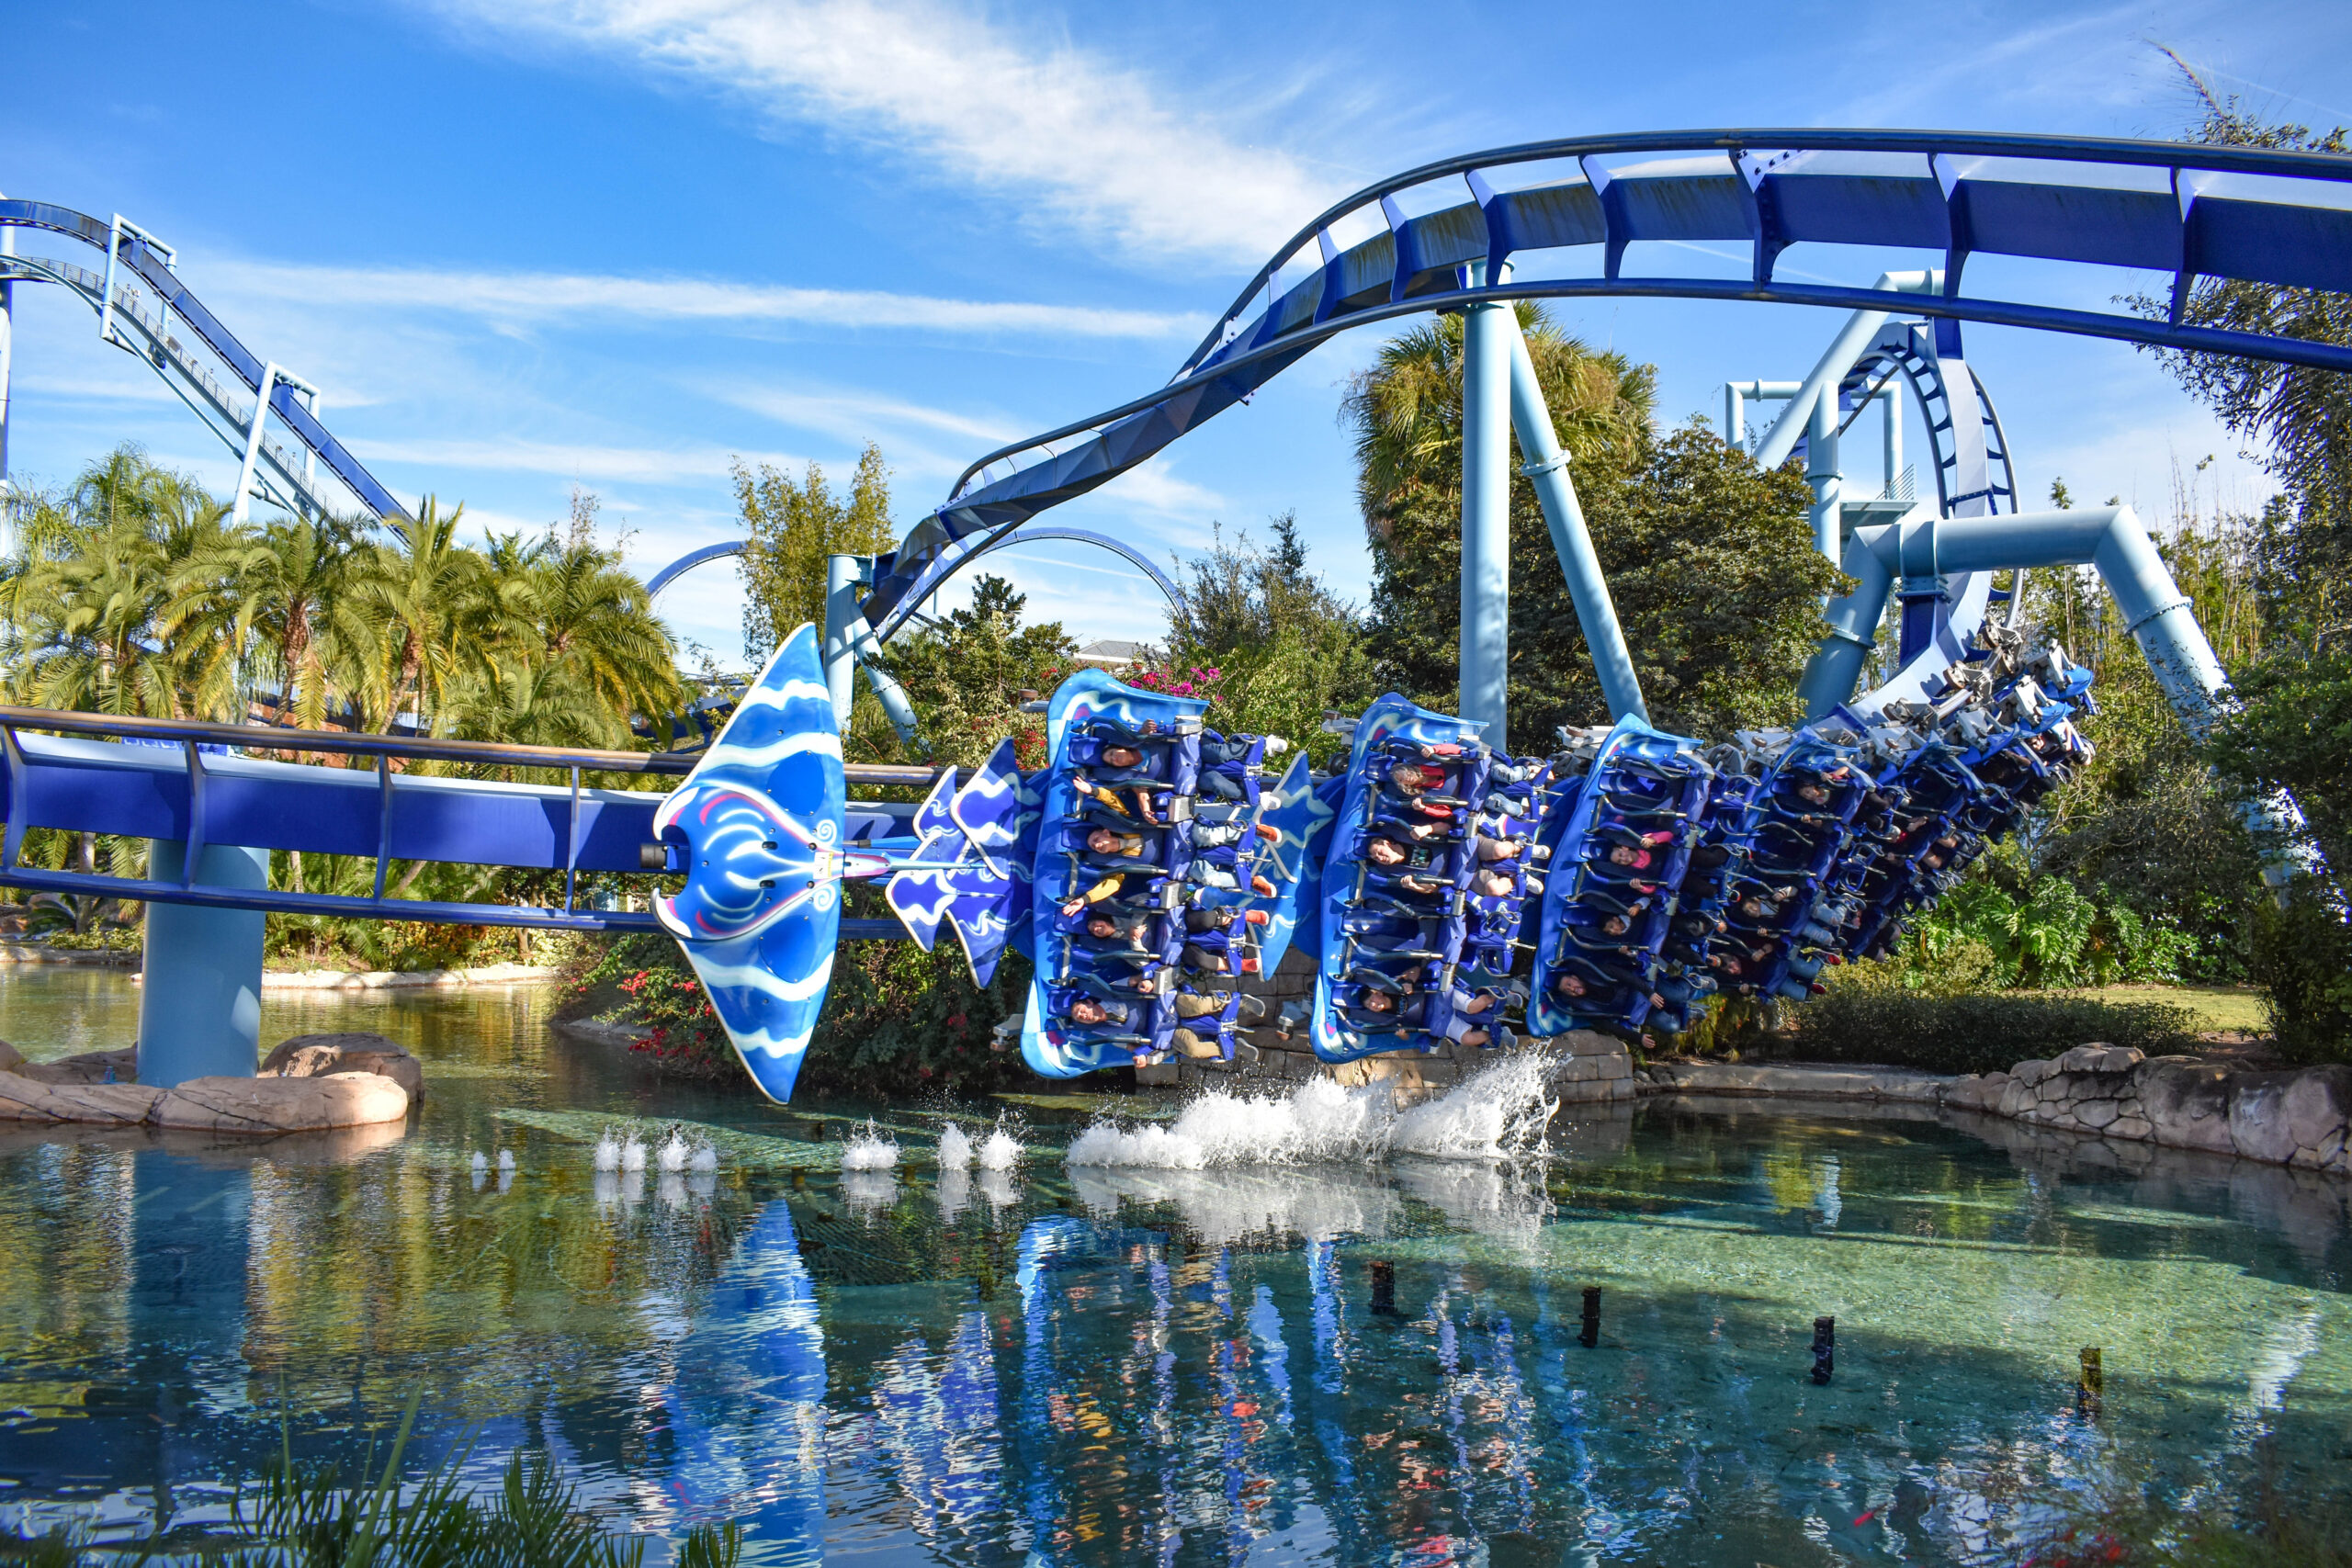 Amazing view of Manta Ray Rollercoaster at Sea World Theme Park at Sea World in International Drive area.